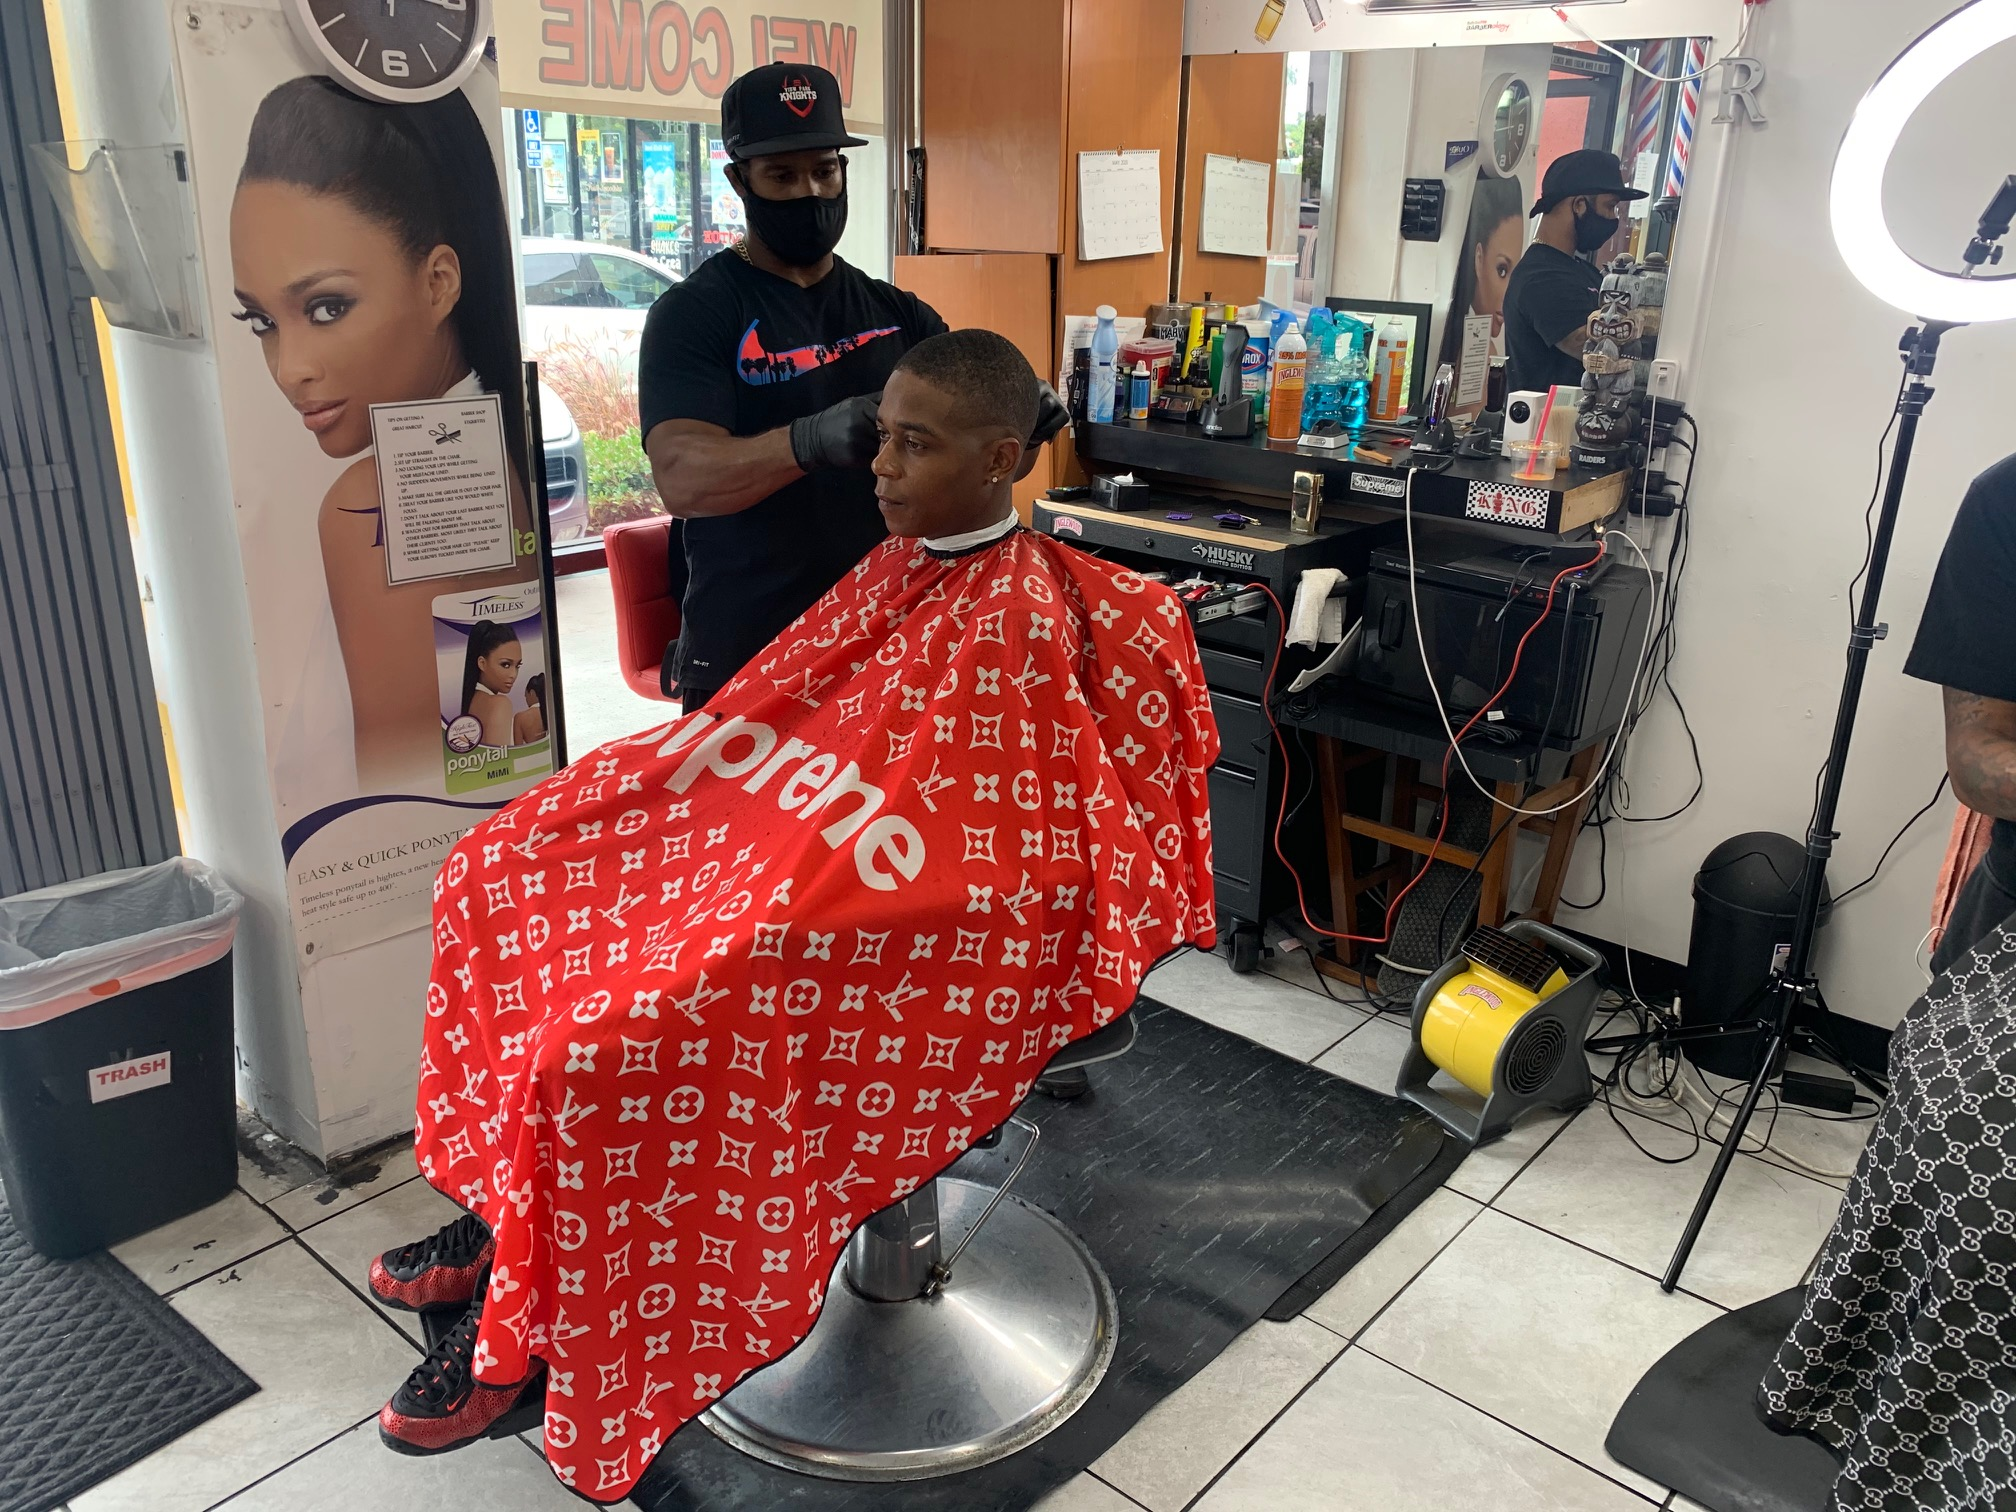 Inglewood S King And Queen Beauty Salon Back In Business Inglewood Today News